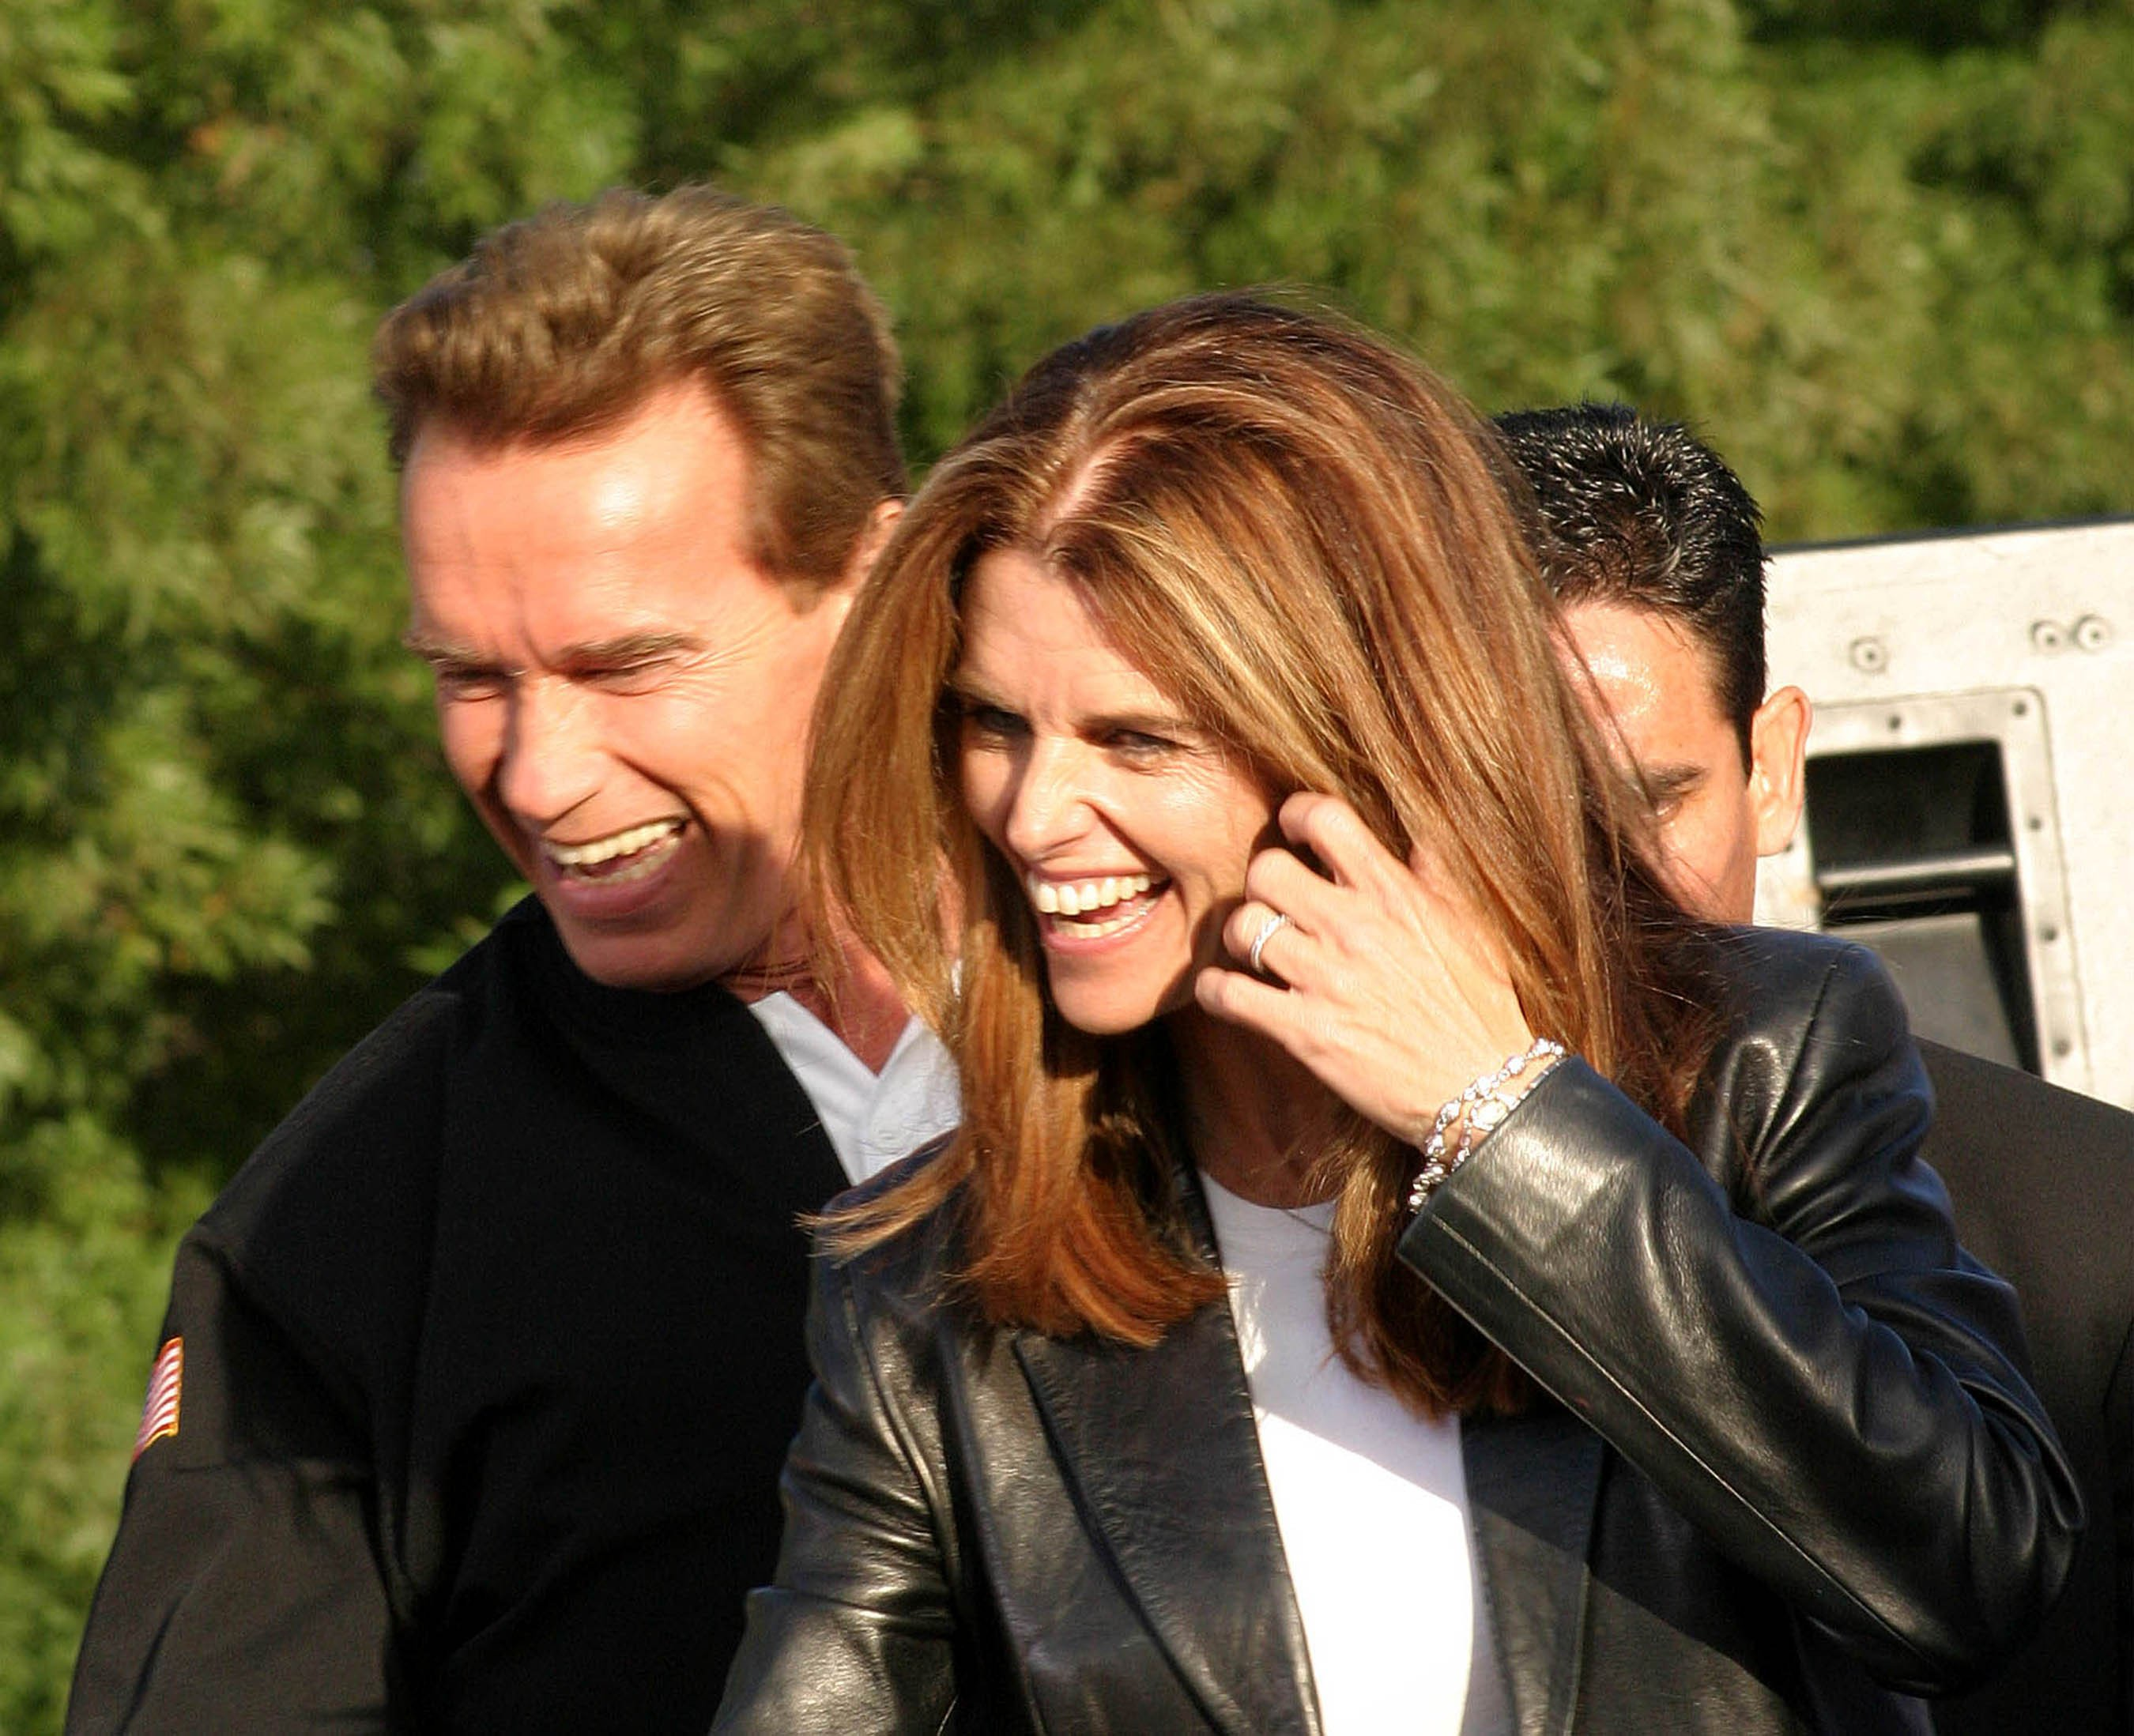 Image Credits: Shutterstock / Joe Seer | Arnold Schwarzenegger, Maria Shriver at the CA Comeback Express Bus Tour in Pleasanton, CA on October 4, 2003.